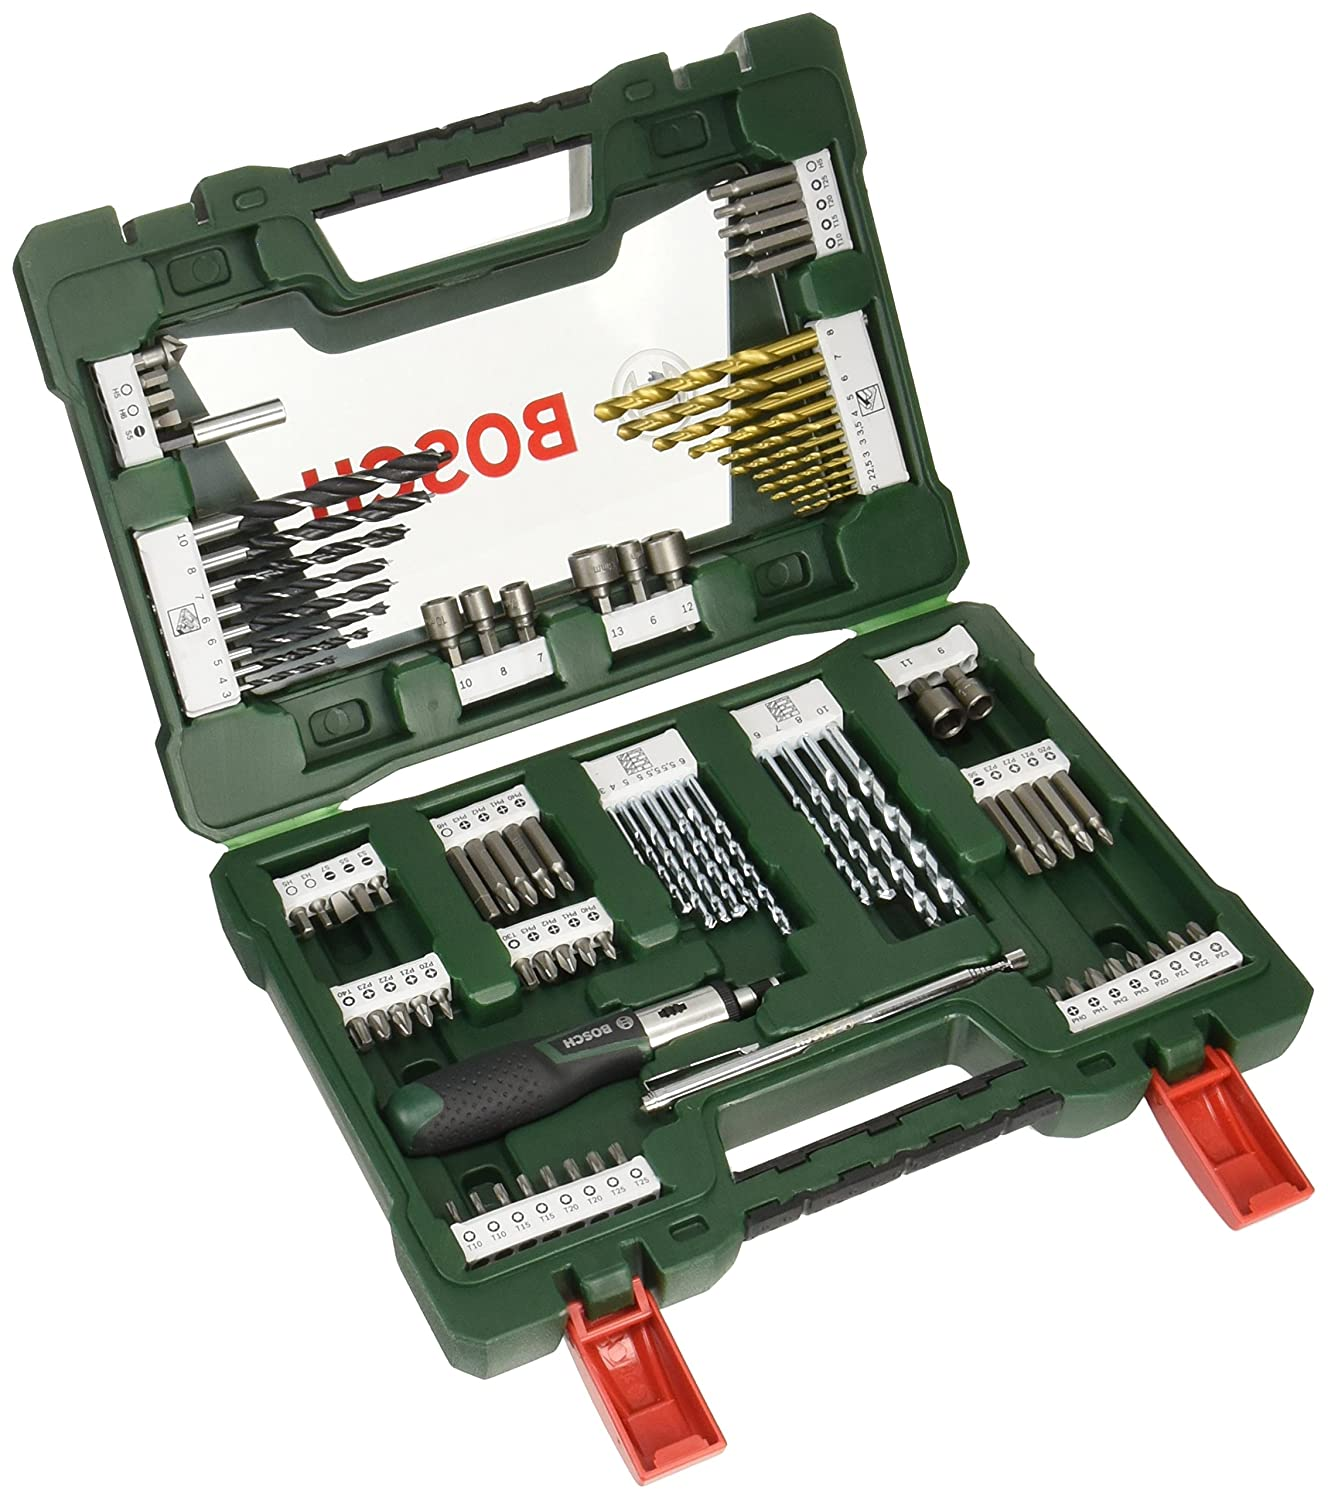 Bosch Drill and Screwdriver Bit Set with Ratchet Screwdriver and Magnetic Stick, 91 Pieces 2607017195